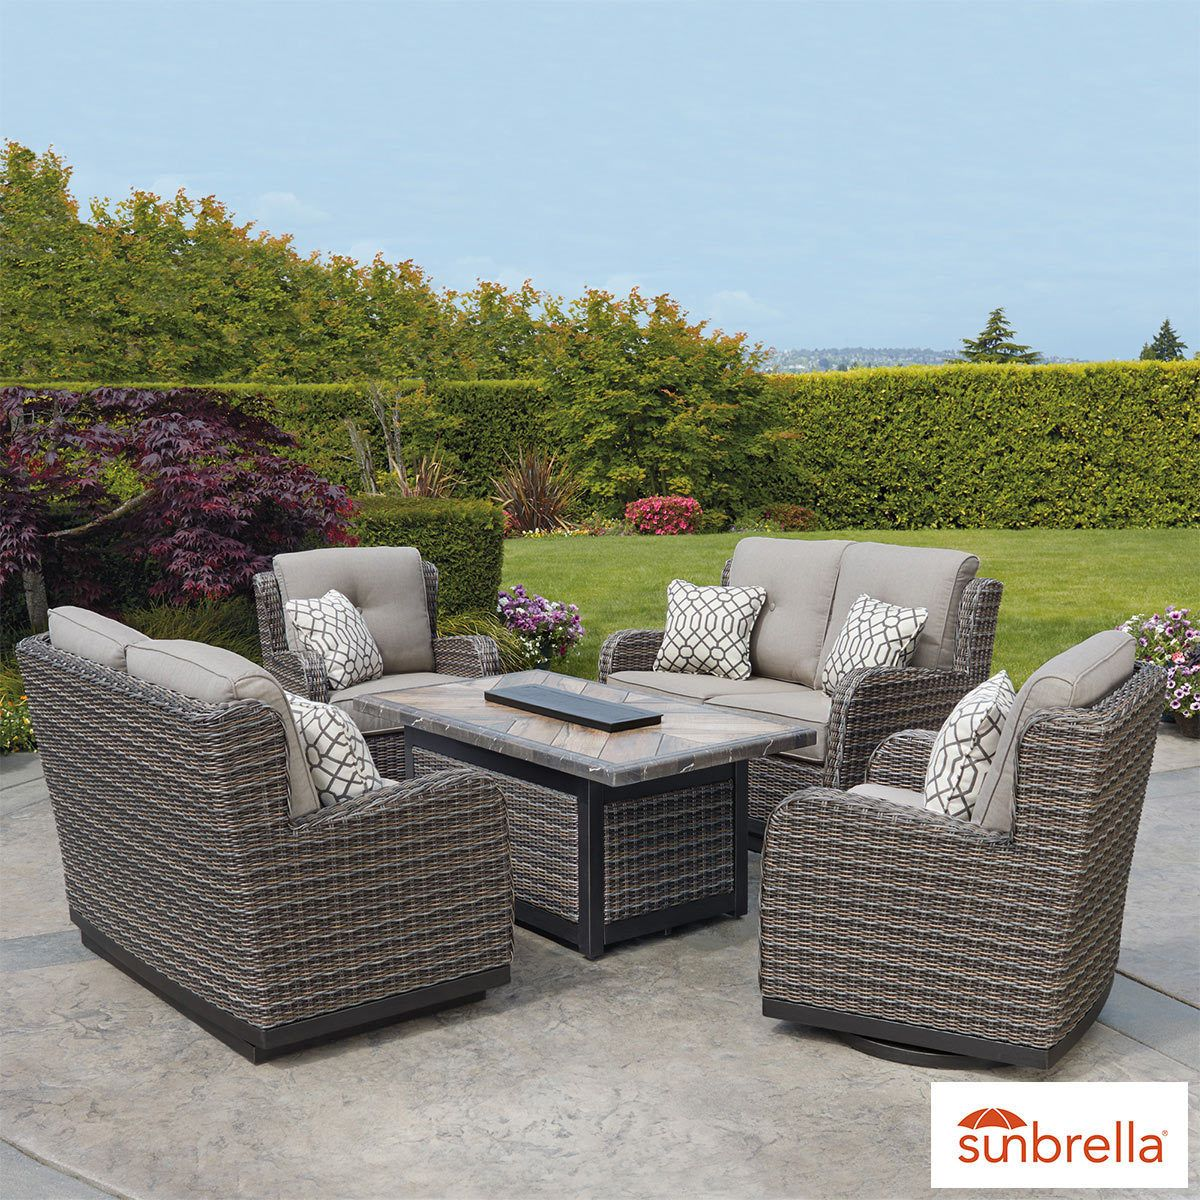 Brilliant Agio Eastport 5 Piece Woven Fire Chat Set Cover Agio Home Interior And Landscaping Ologienasavecom